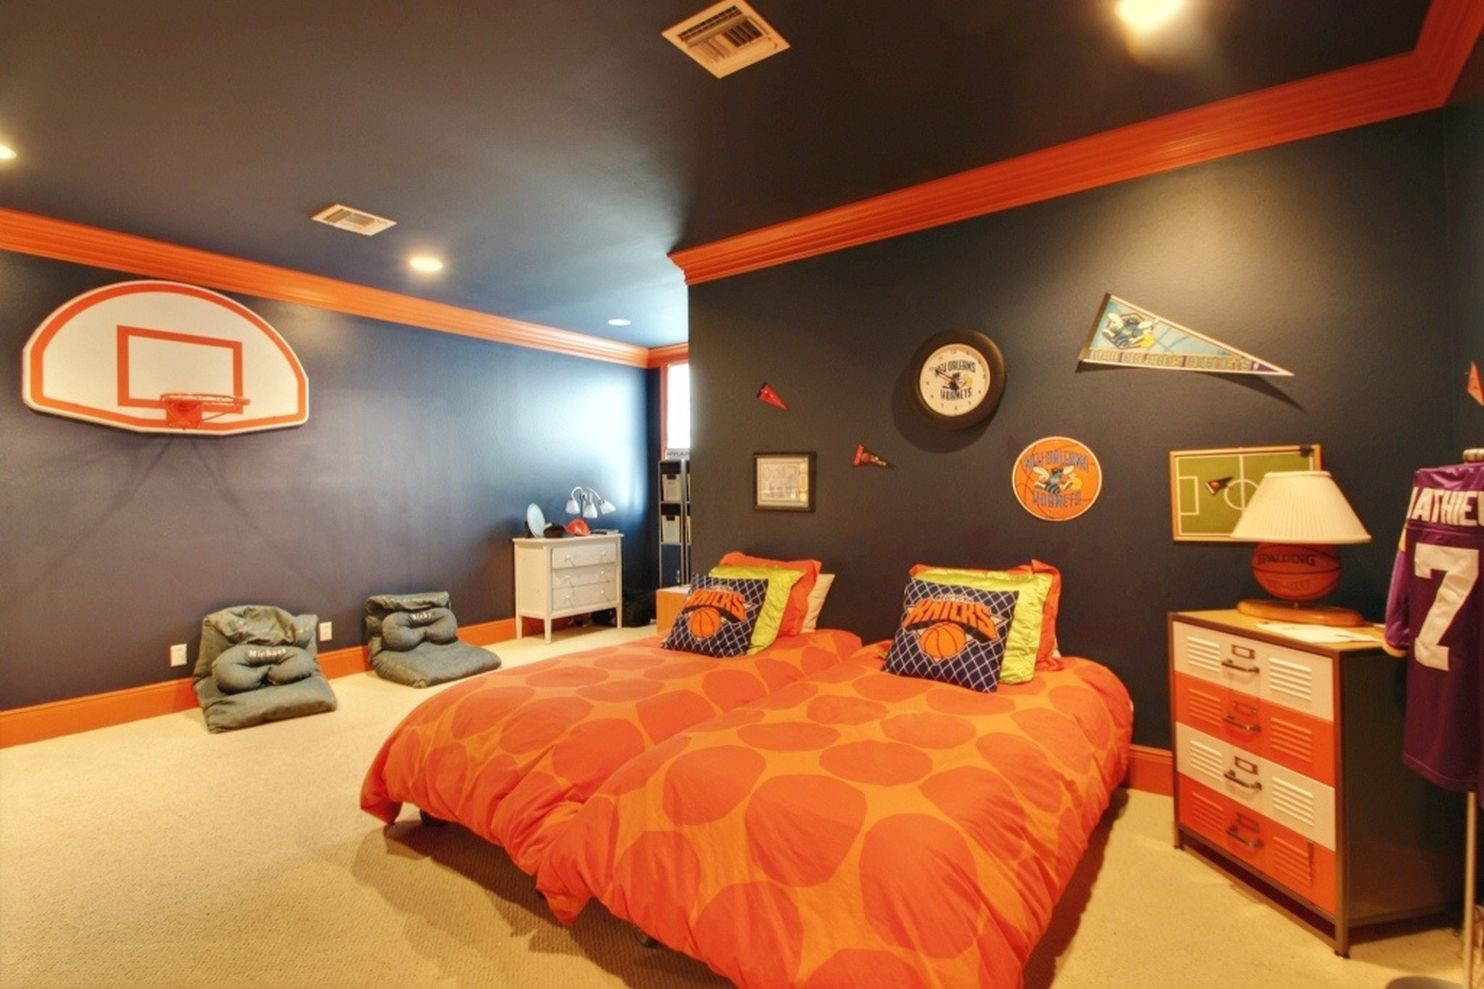 76 inspiring bedroom design ideas for boy who loves - Comely pictures of basketball themed bedroom decoration ideas ...